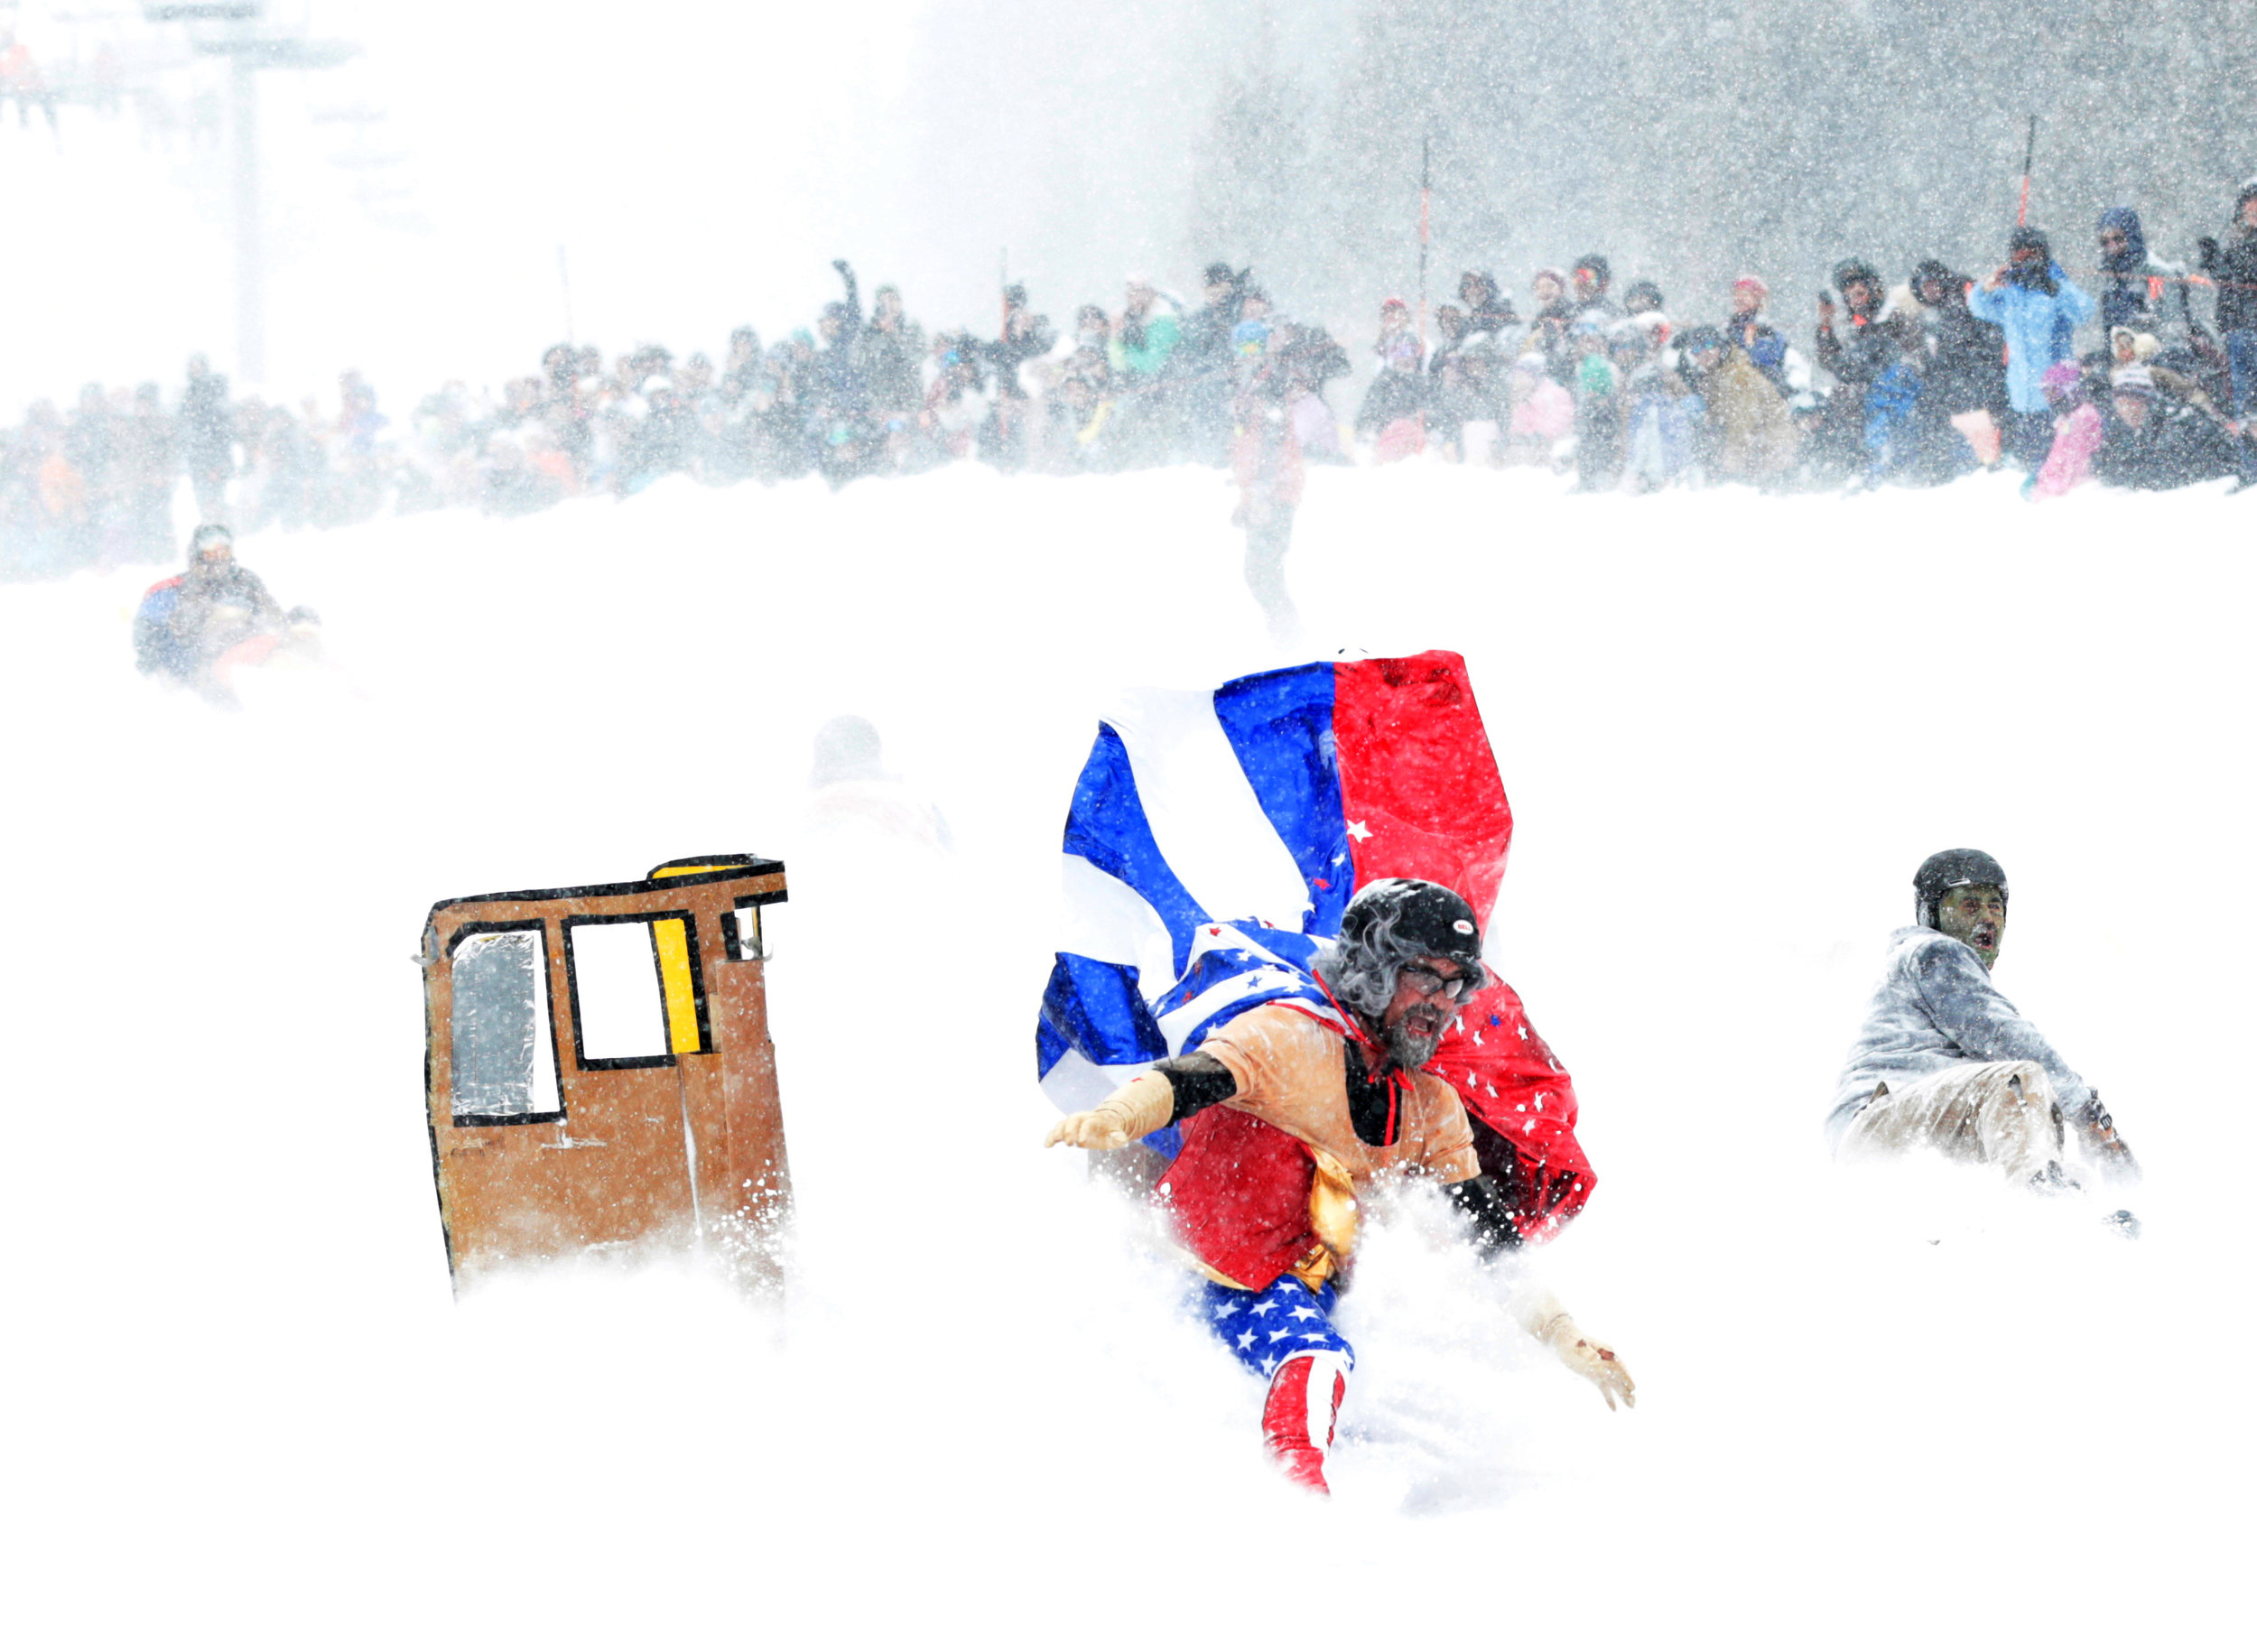 Riders bail from the Super Senior Bus during the Cardboard Classic at the Winter Carnival in Red Lodge on Saturday.